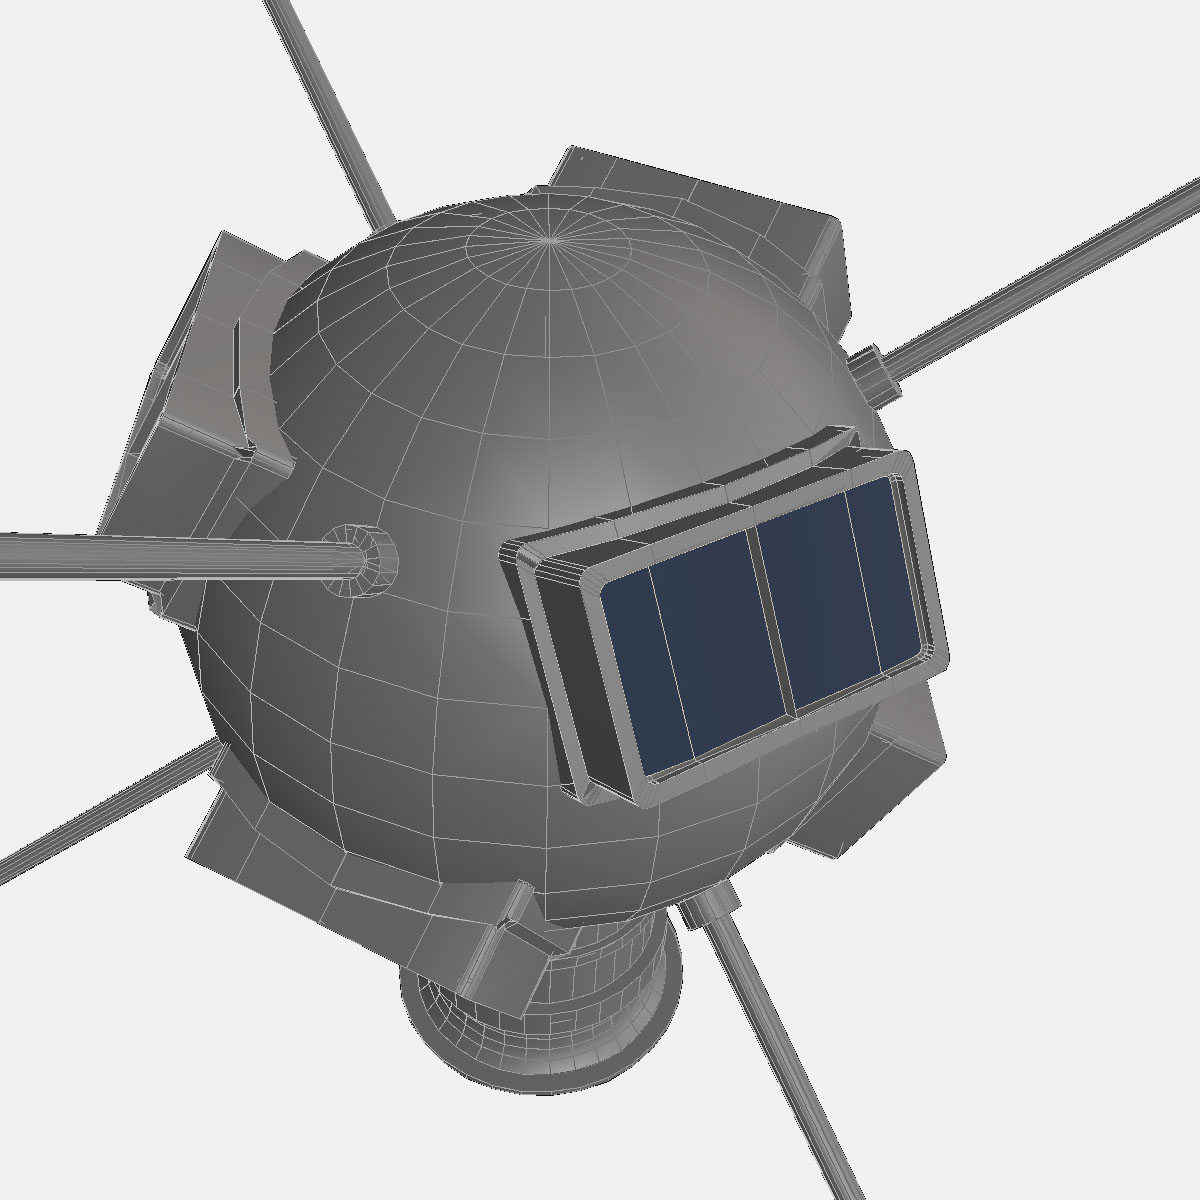 Vanguard I Satellite 3d model 3ds dxf fbx blend cob dae X obj 163933